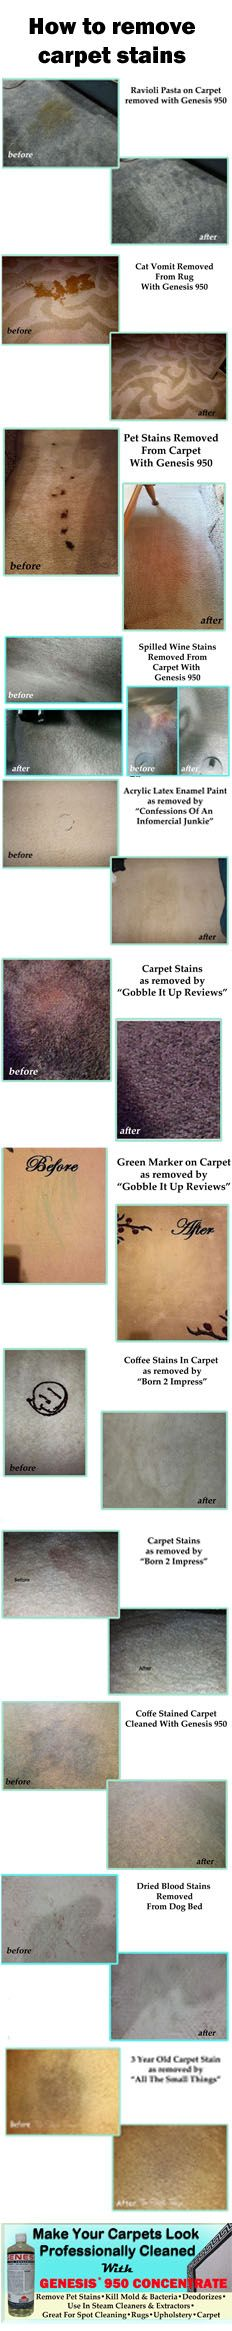 Looking for the best carpet stain remover? Genesis 950 is a green all purpose cleaner that can remove the toughest stains. Here are some examples of stains removed with Genesis 950. Pet stains, coffee stains, wine stains, marker stains, paint stains and more.